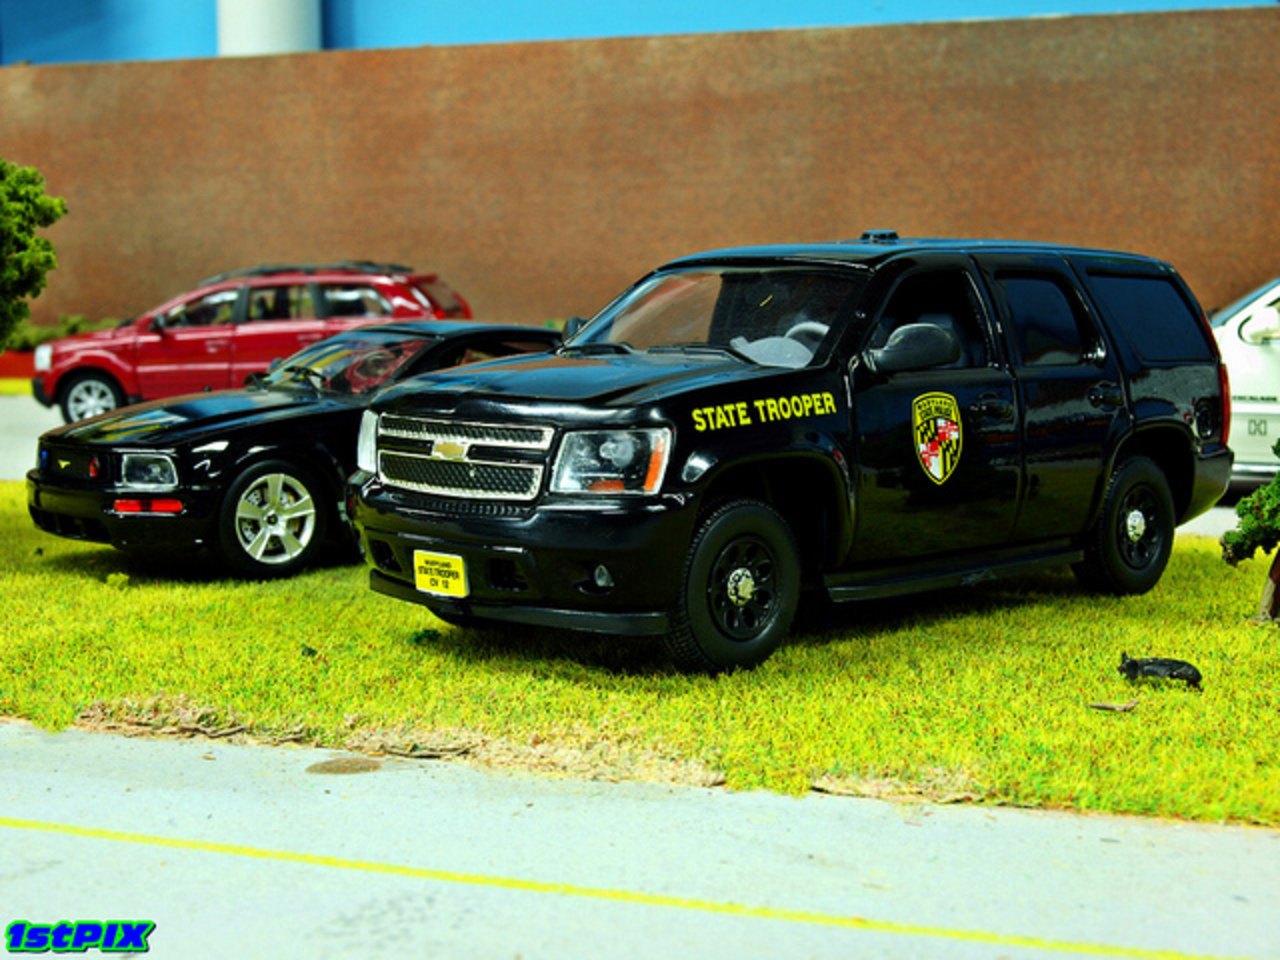 Maryland State Police Chevy Tahoe Diecast | Flickr - Photo Sharing!